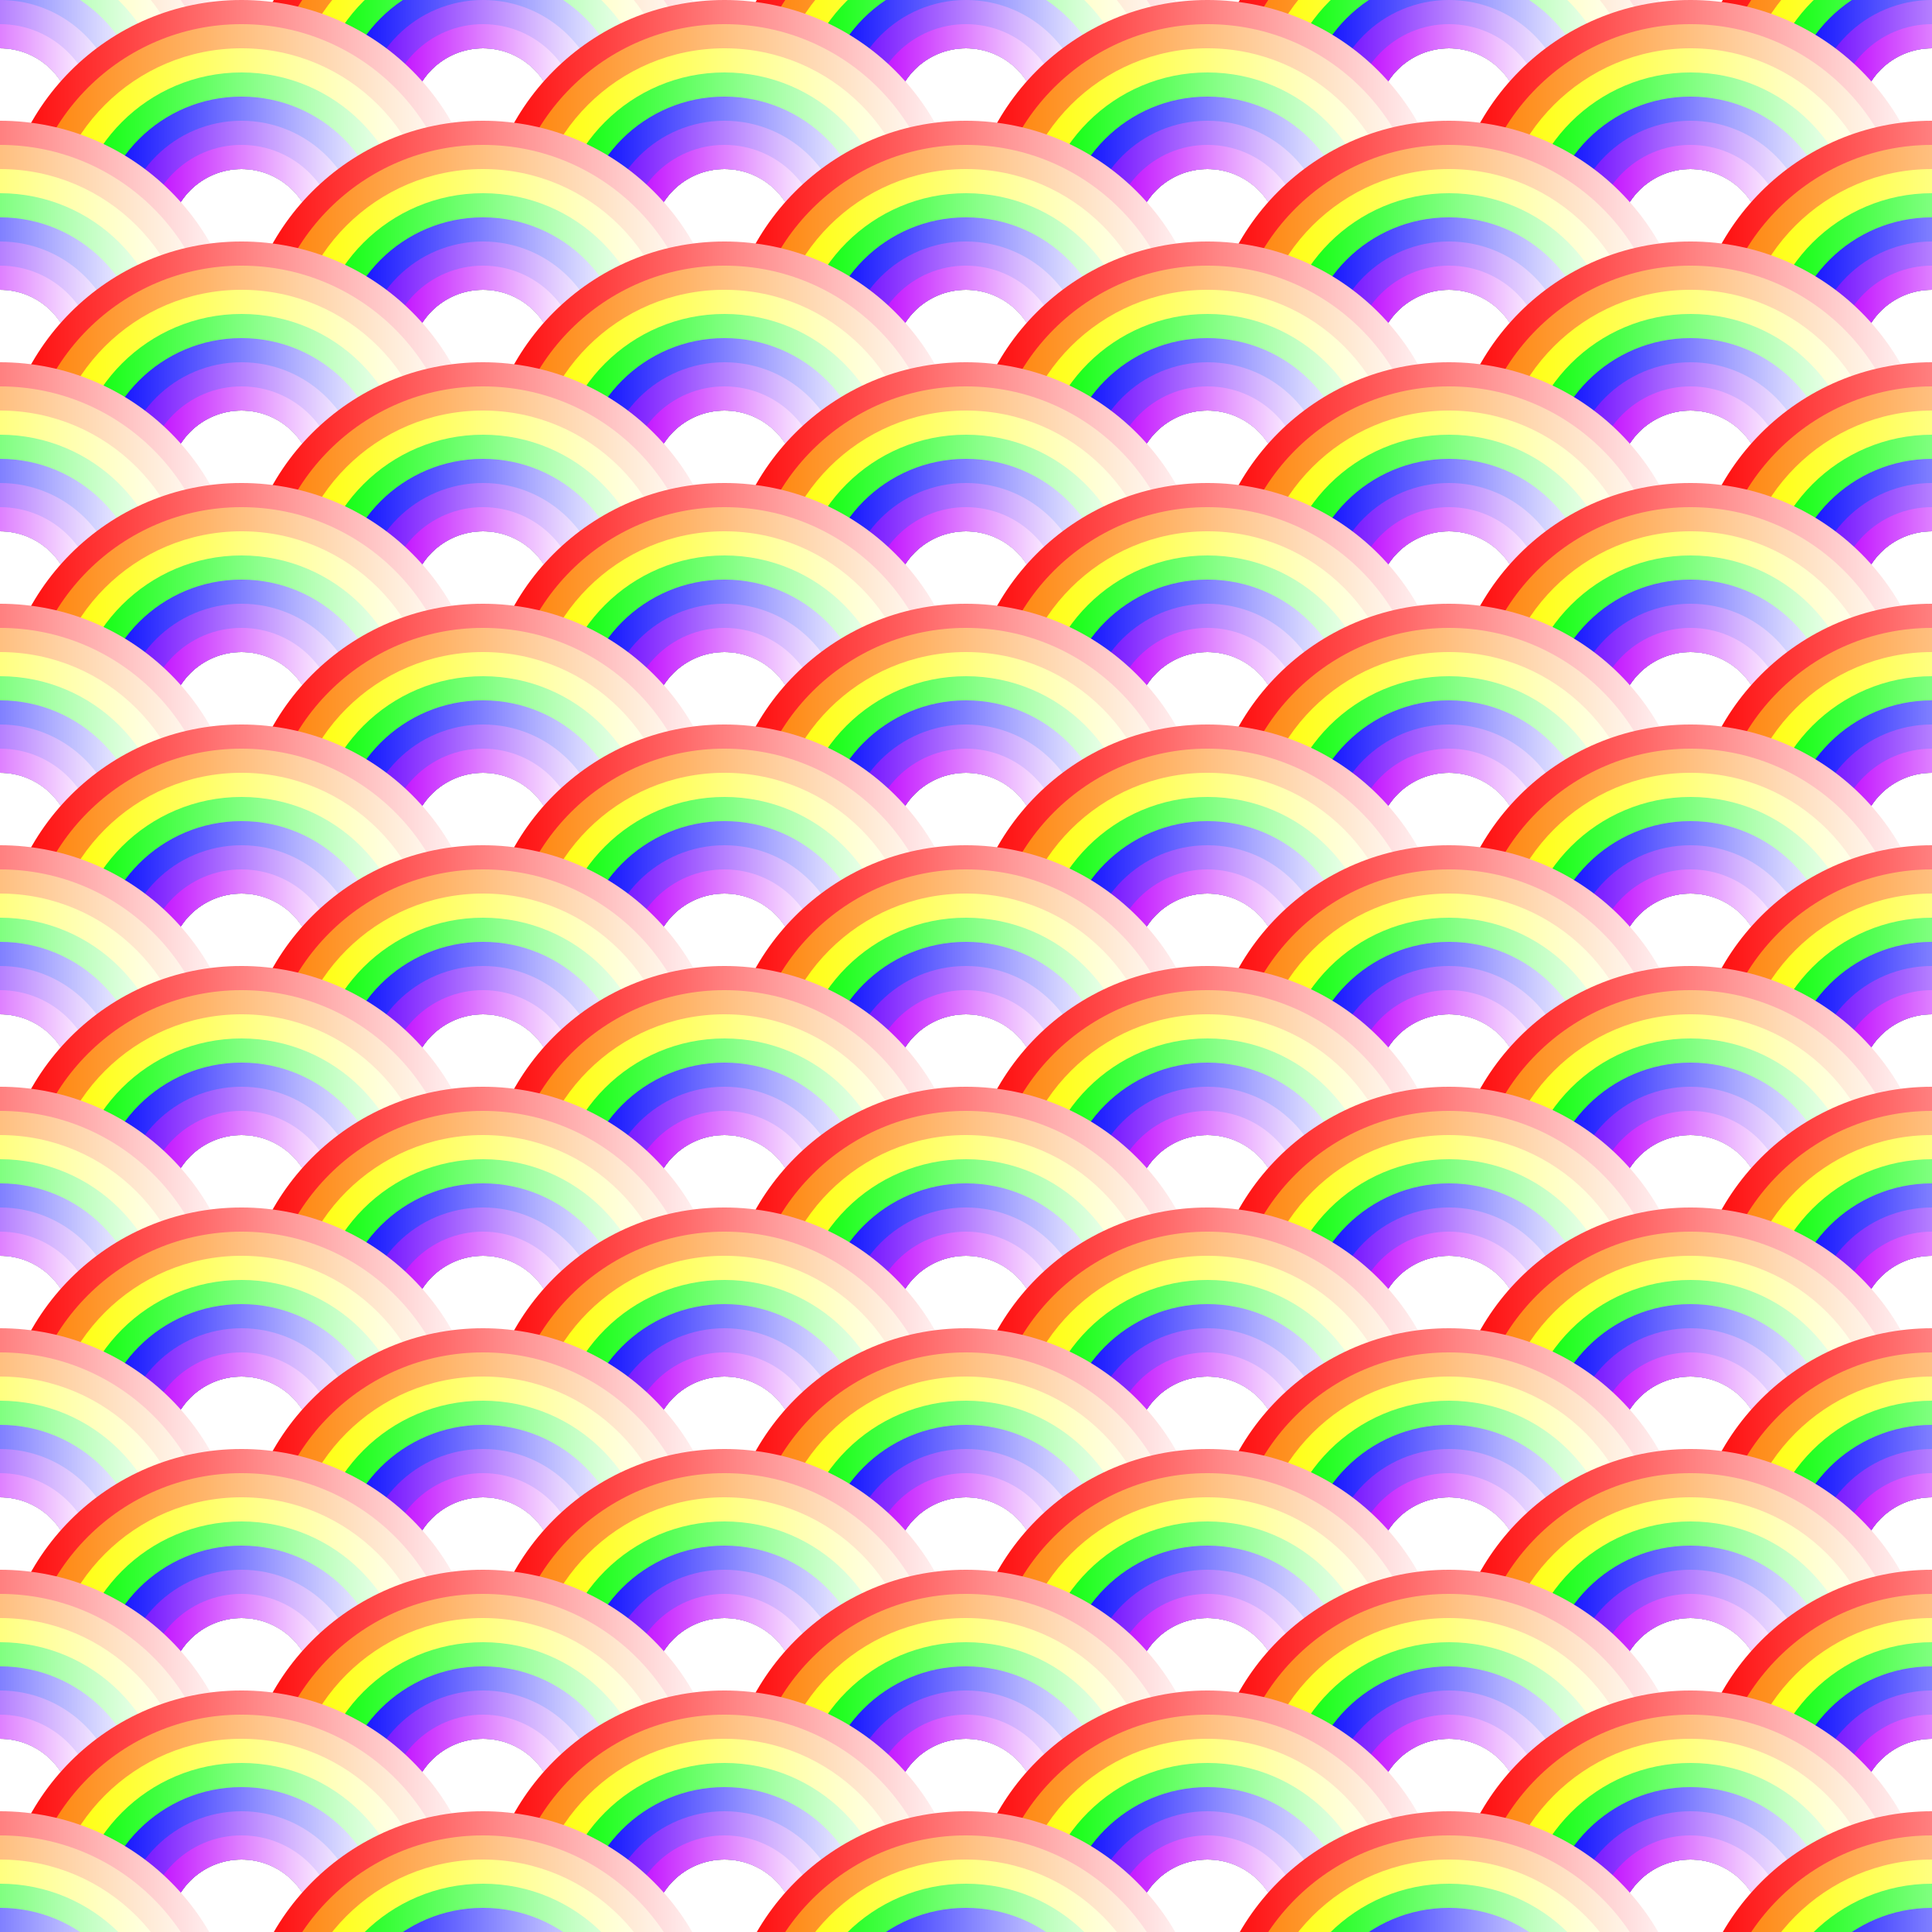 Rainbow pattern 2 by Firkin